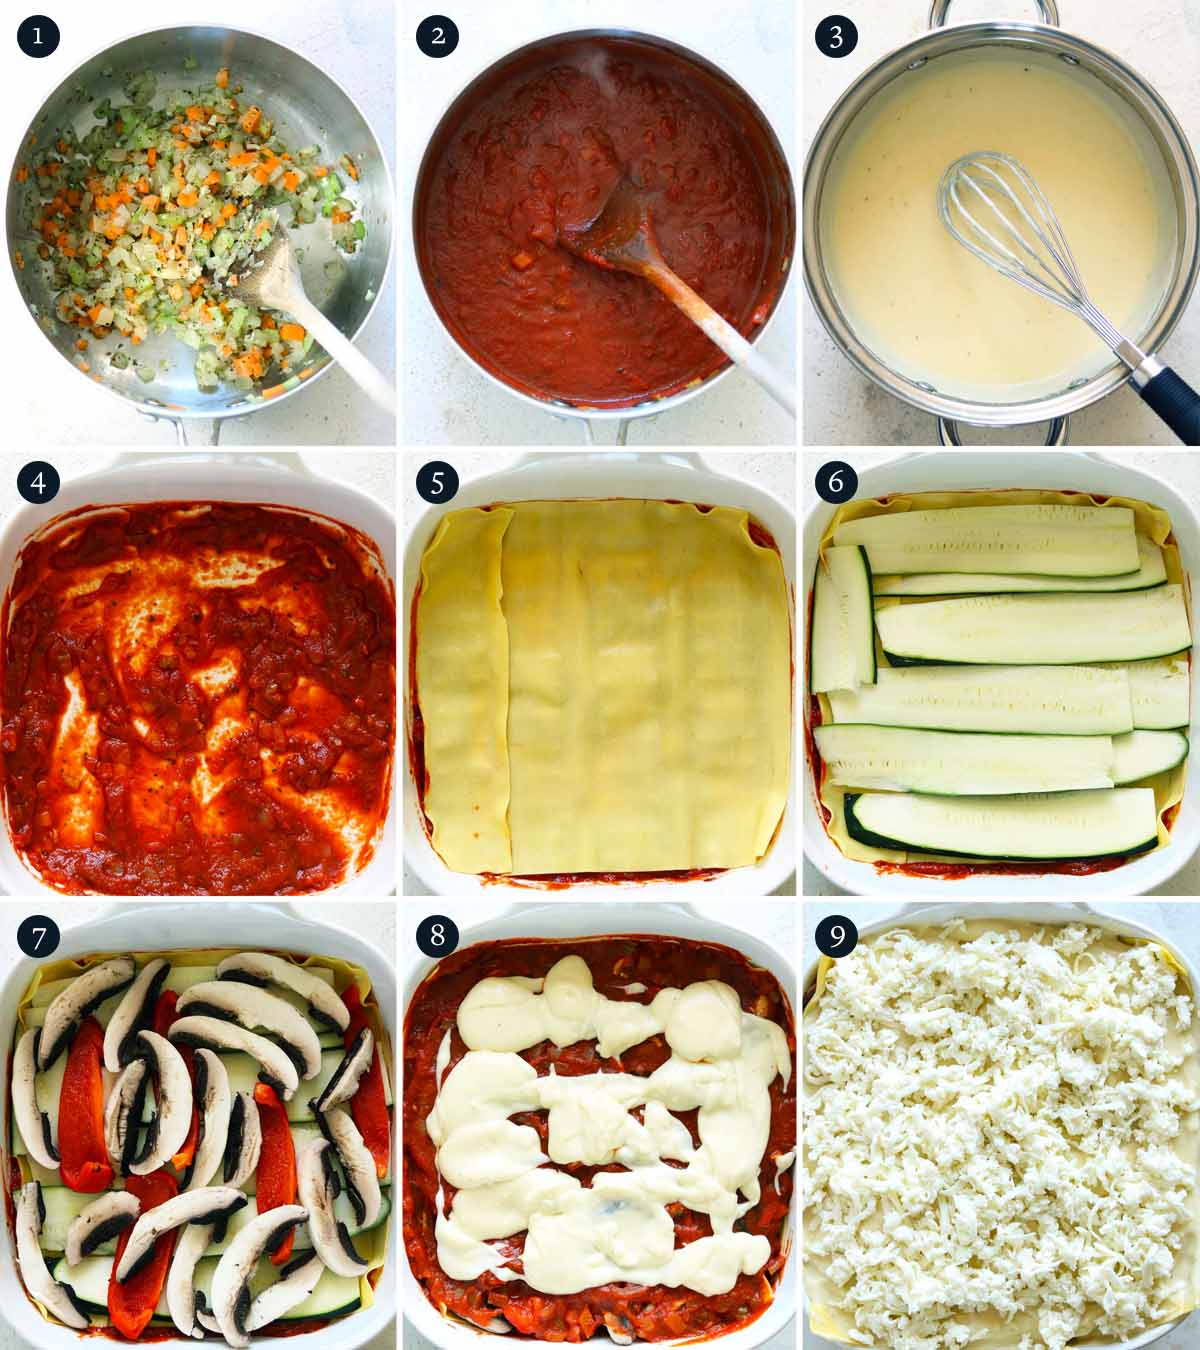 Step by step process on how to make Vegetarian Lasagne